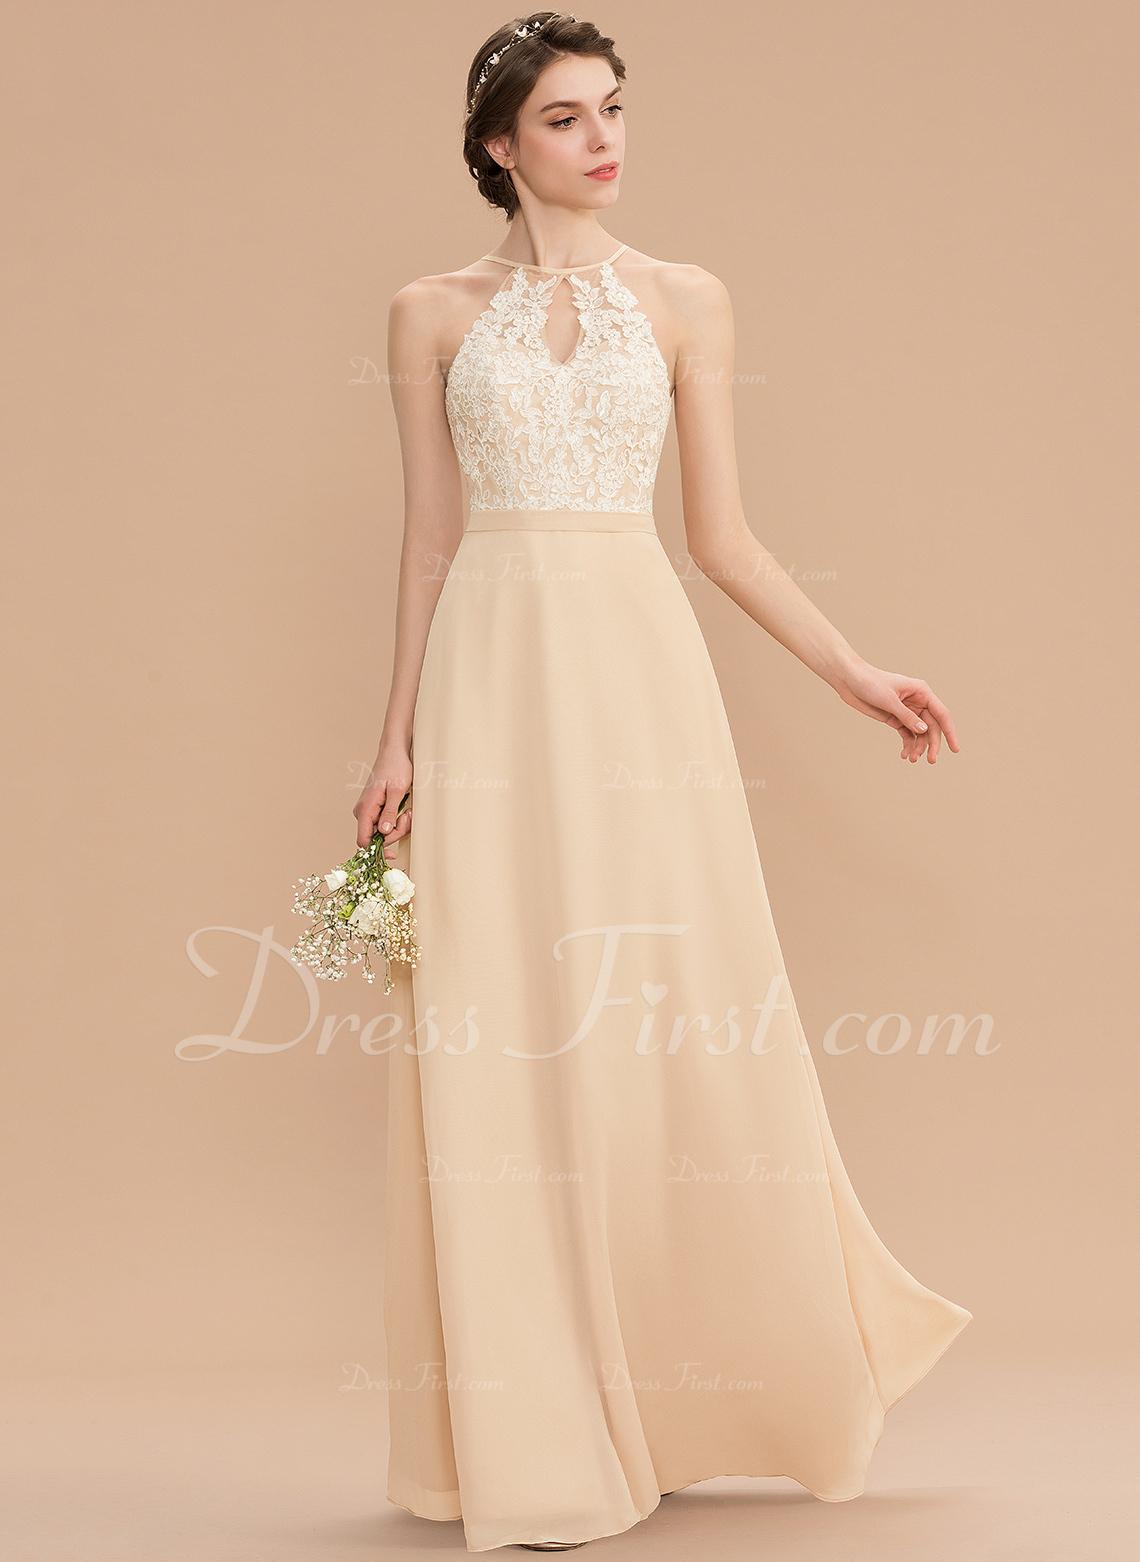 d9d37bc5adc A-Line Scoop Neck Floor-Length Chiffon Lace Bridesmaid Dress With Bow(s)   176761